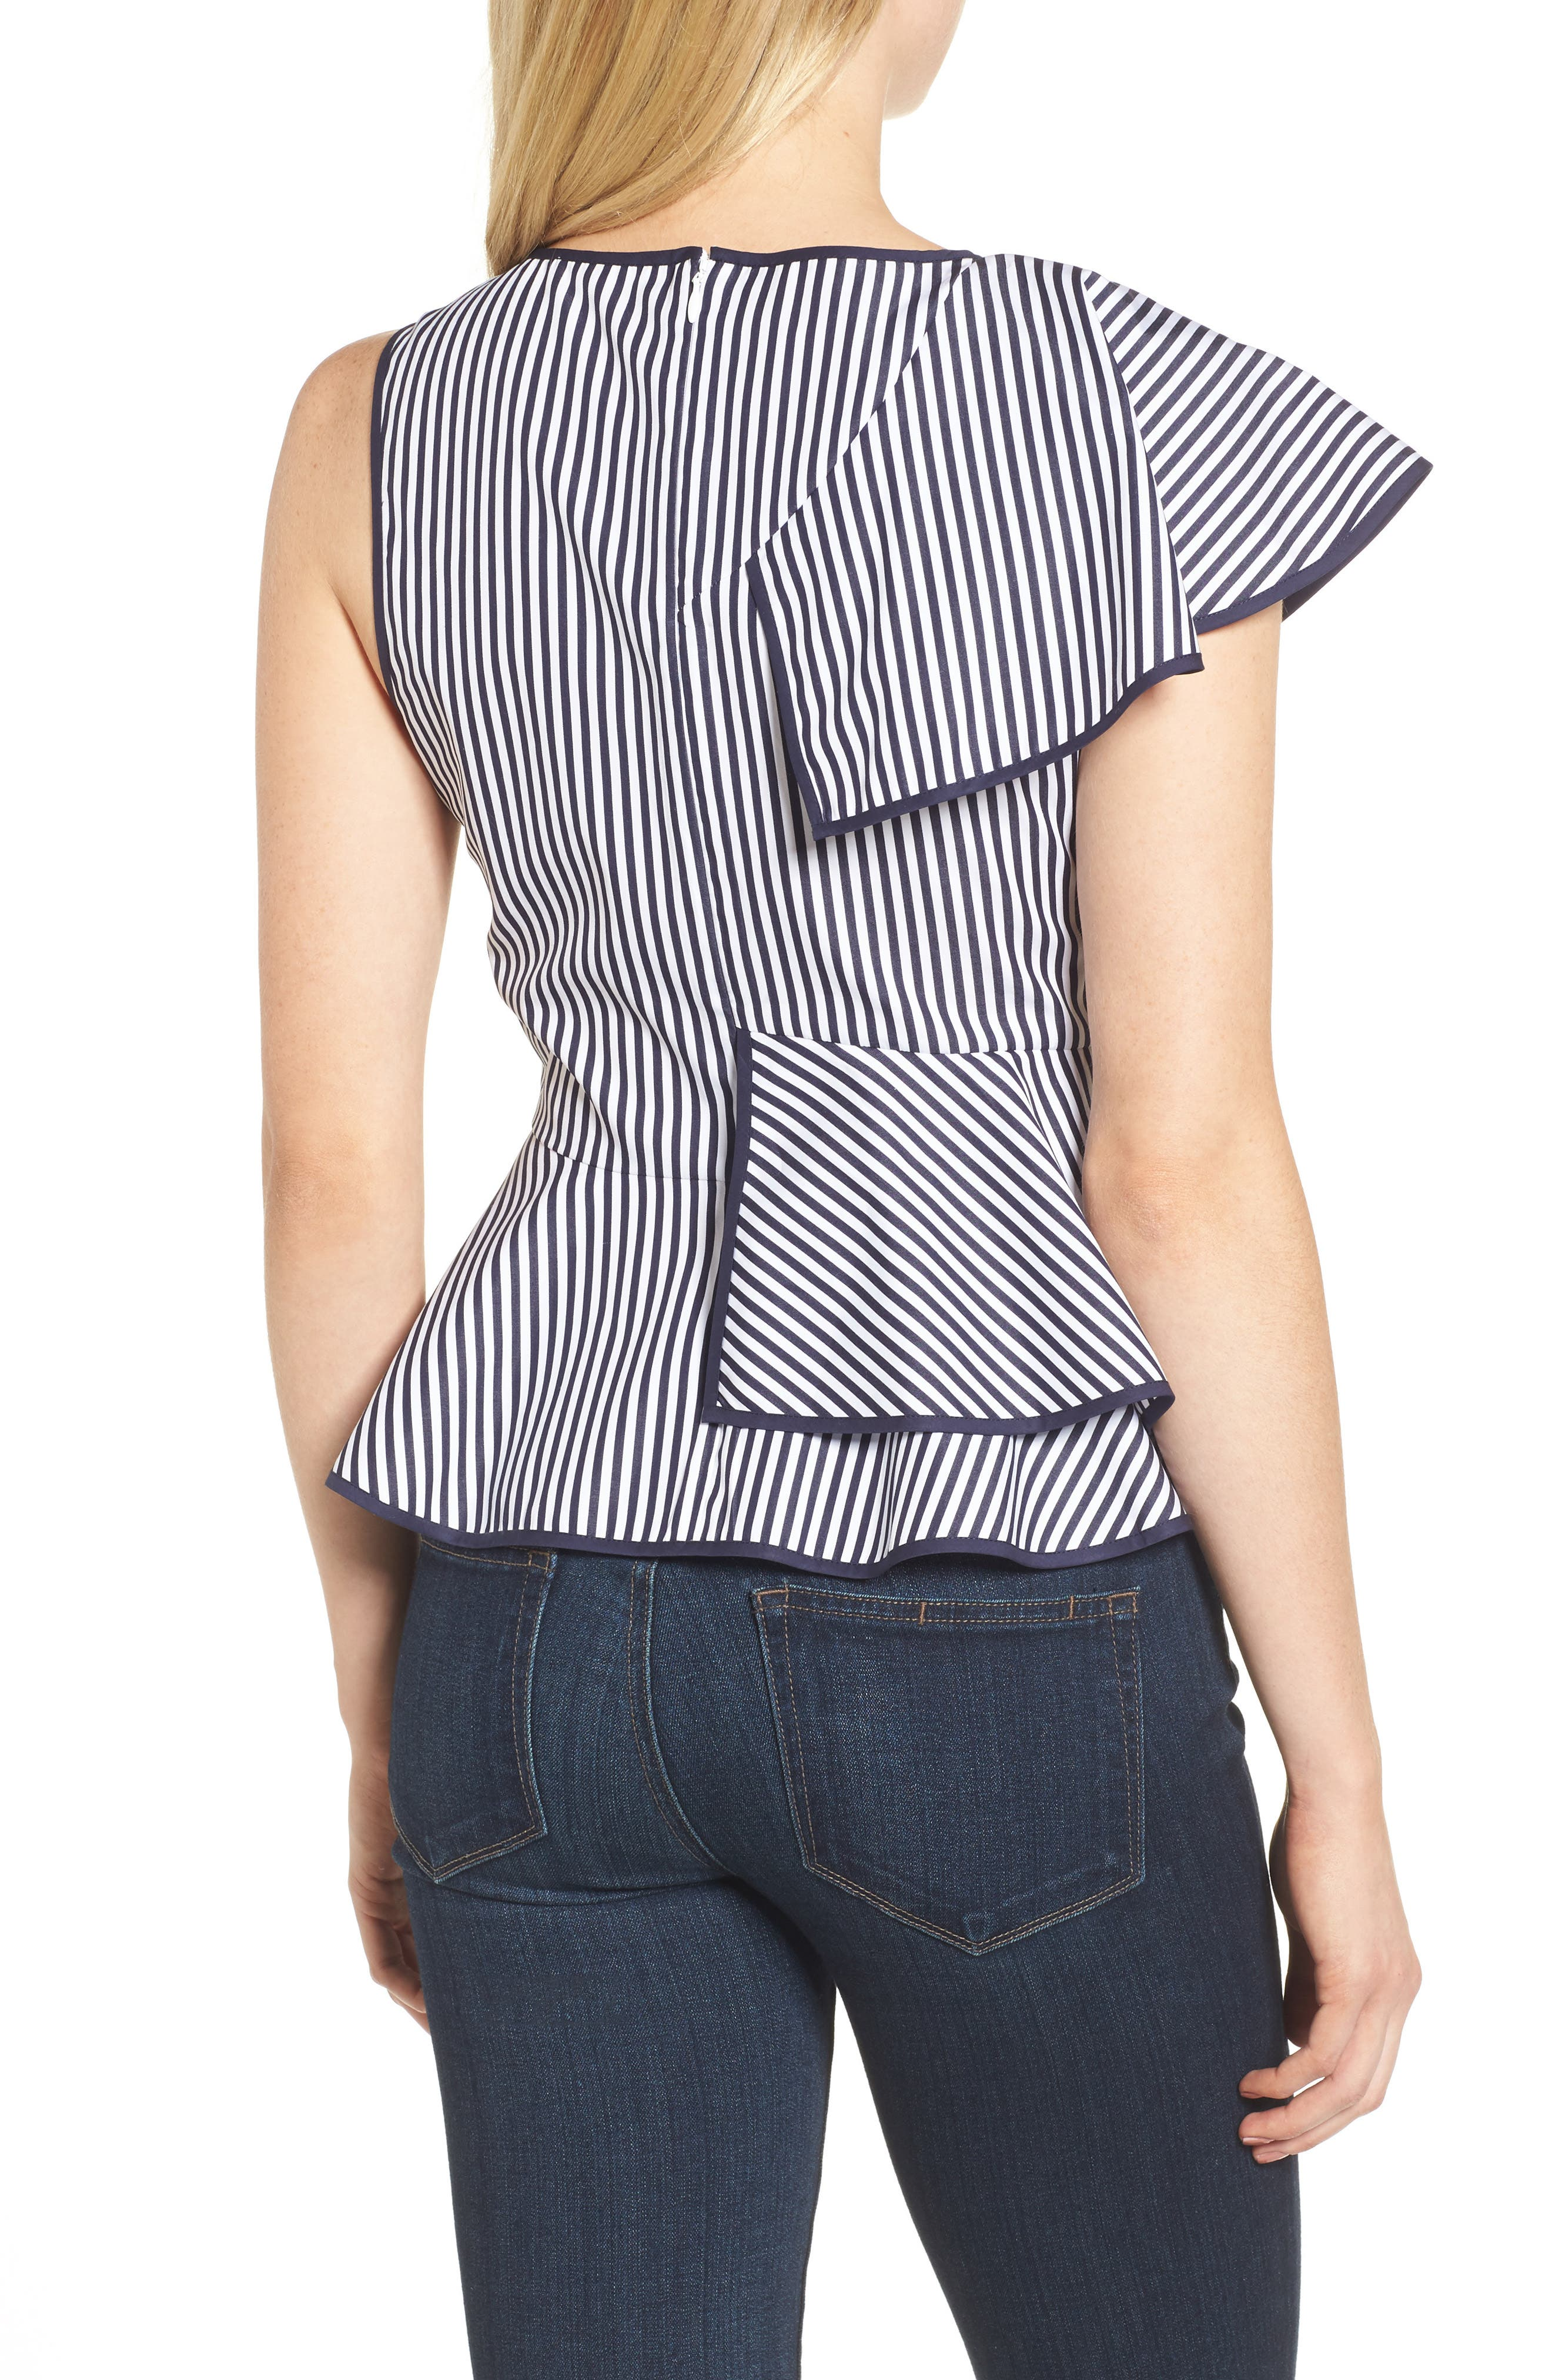 Carly Ruffle Top,                             Alternate thumbnail 2, color,                             Navy/ White